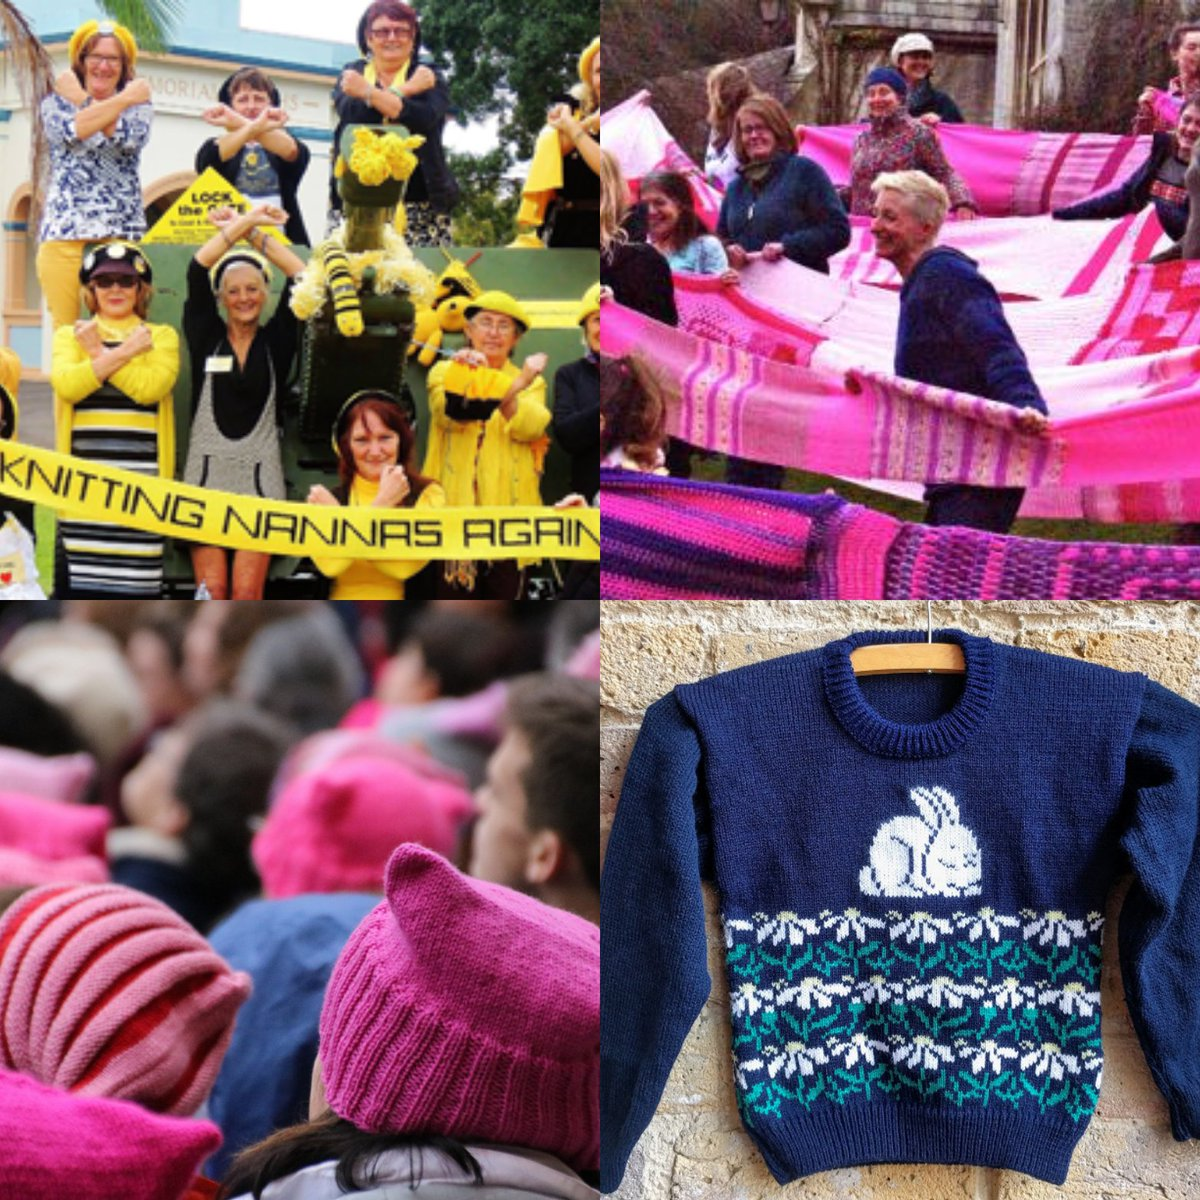 Article on #knitting and activism. Knitting 4 #charity also helps us make a stand for peace during times of anxiety.  http:// to.pbs.org/2pUtOTI  &nbsp;  <br>http://pic.twitter.com/g48IsrwUtI